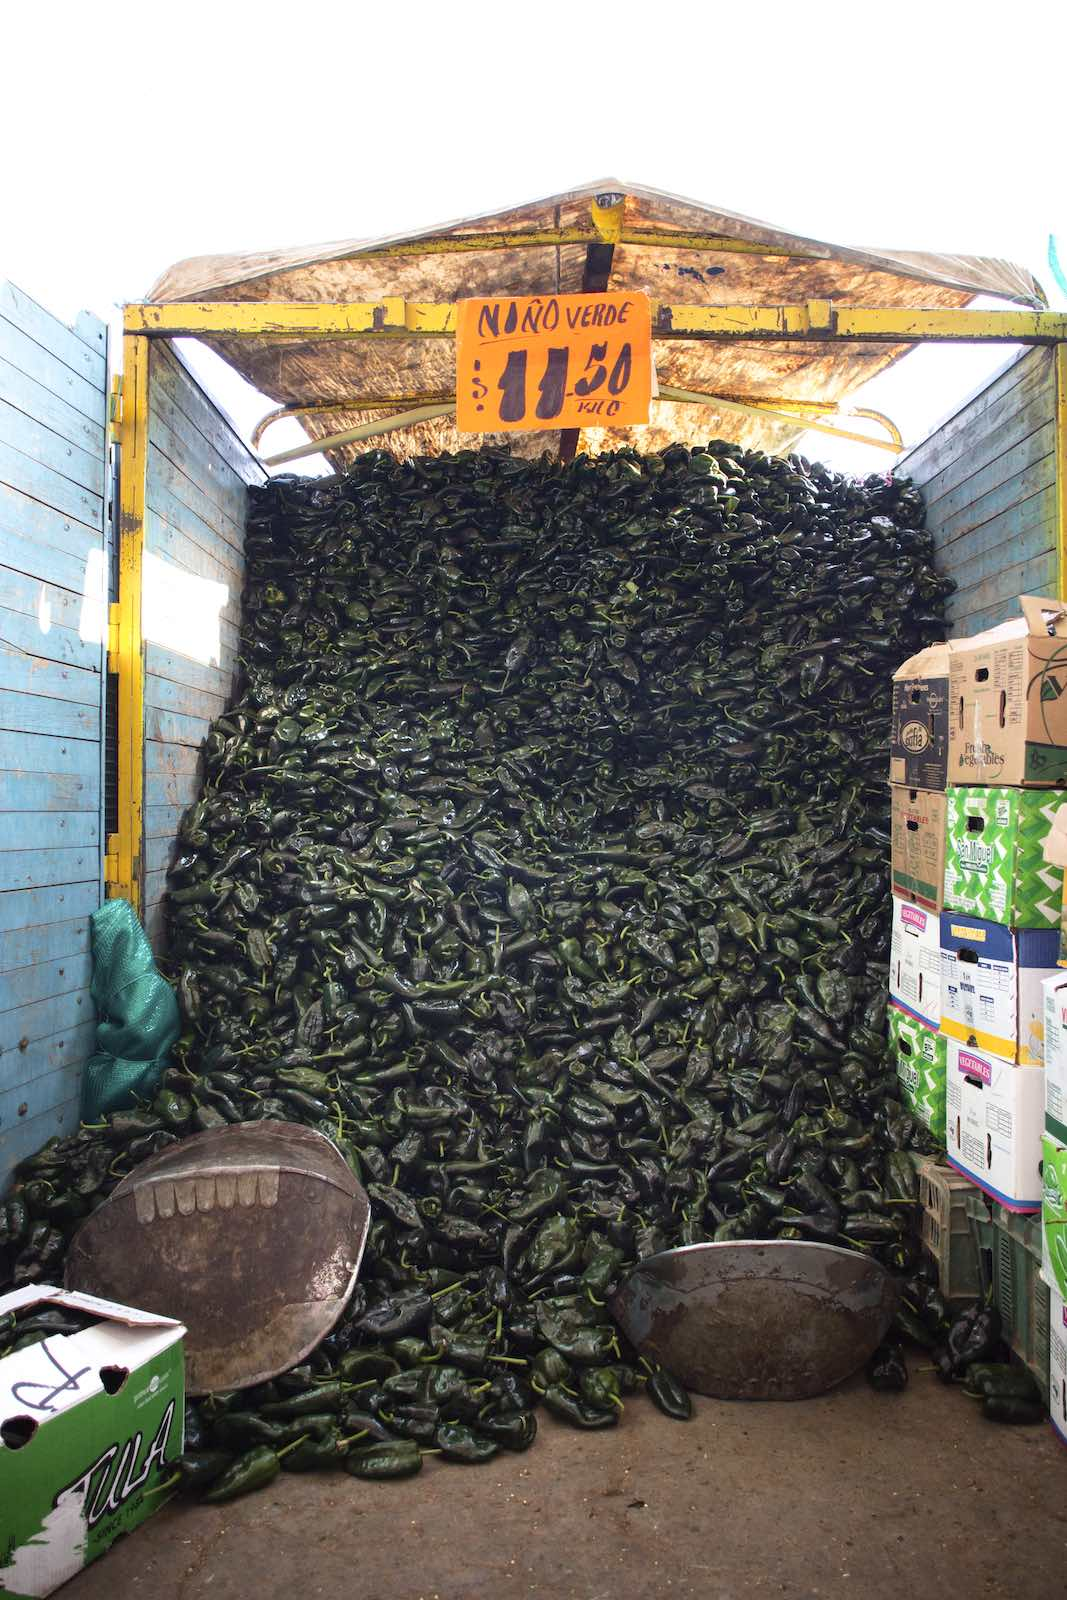 Jody Horton Photography - Hundred of poblano peppers flooding out from a stand in the food market.